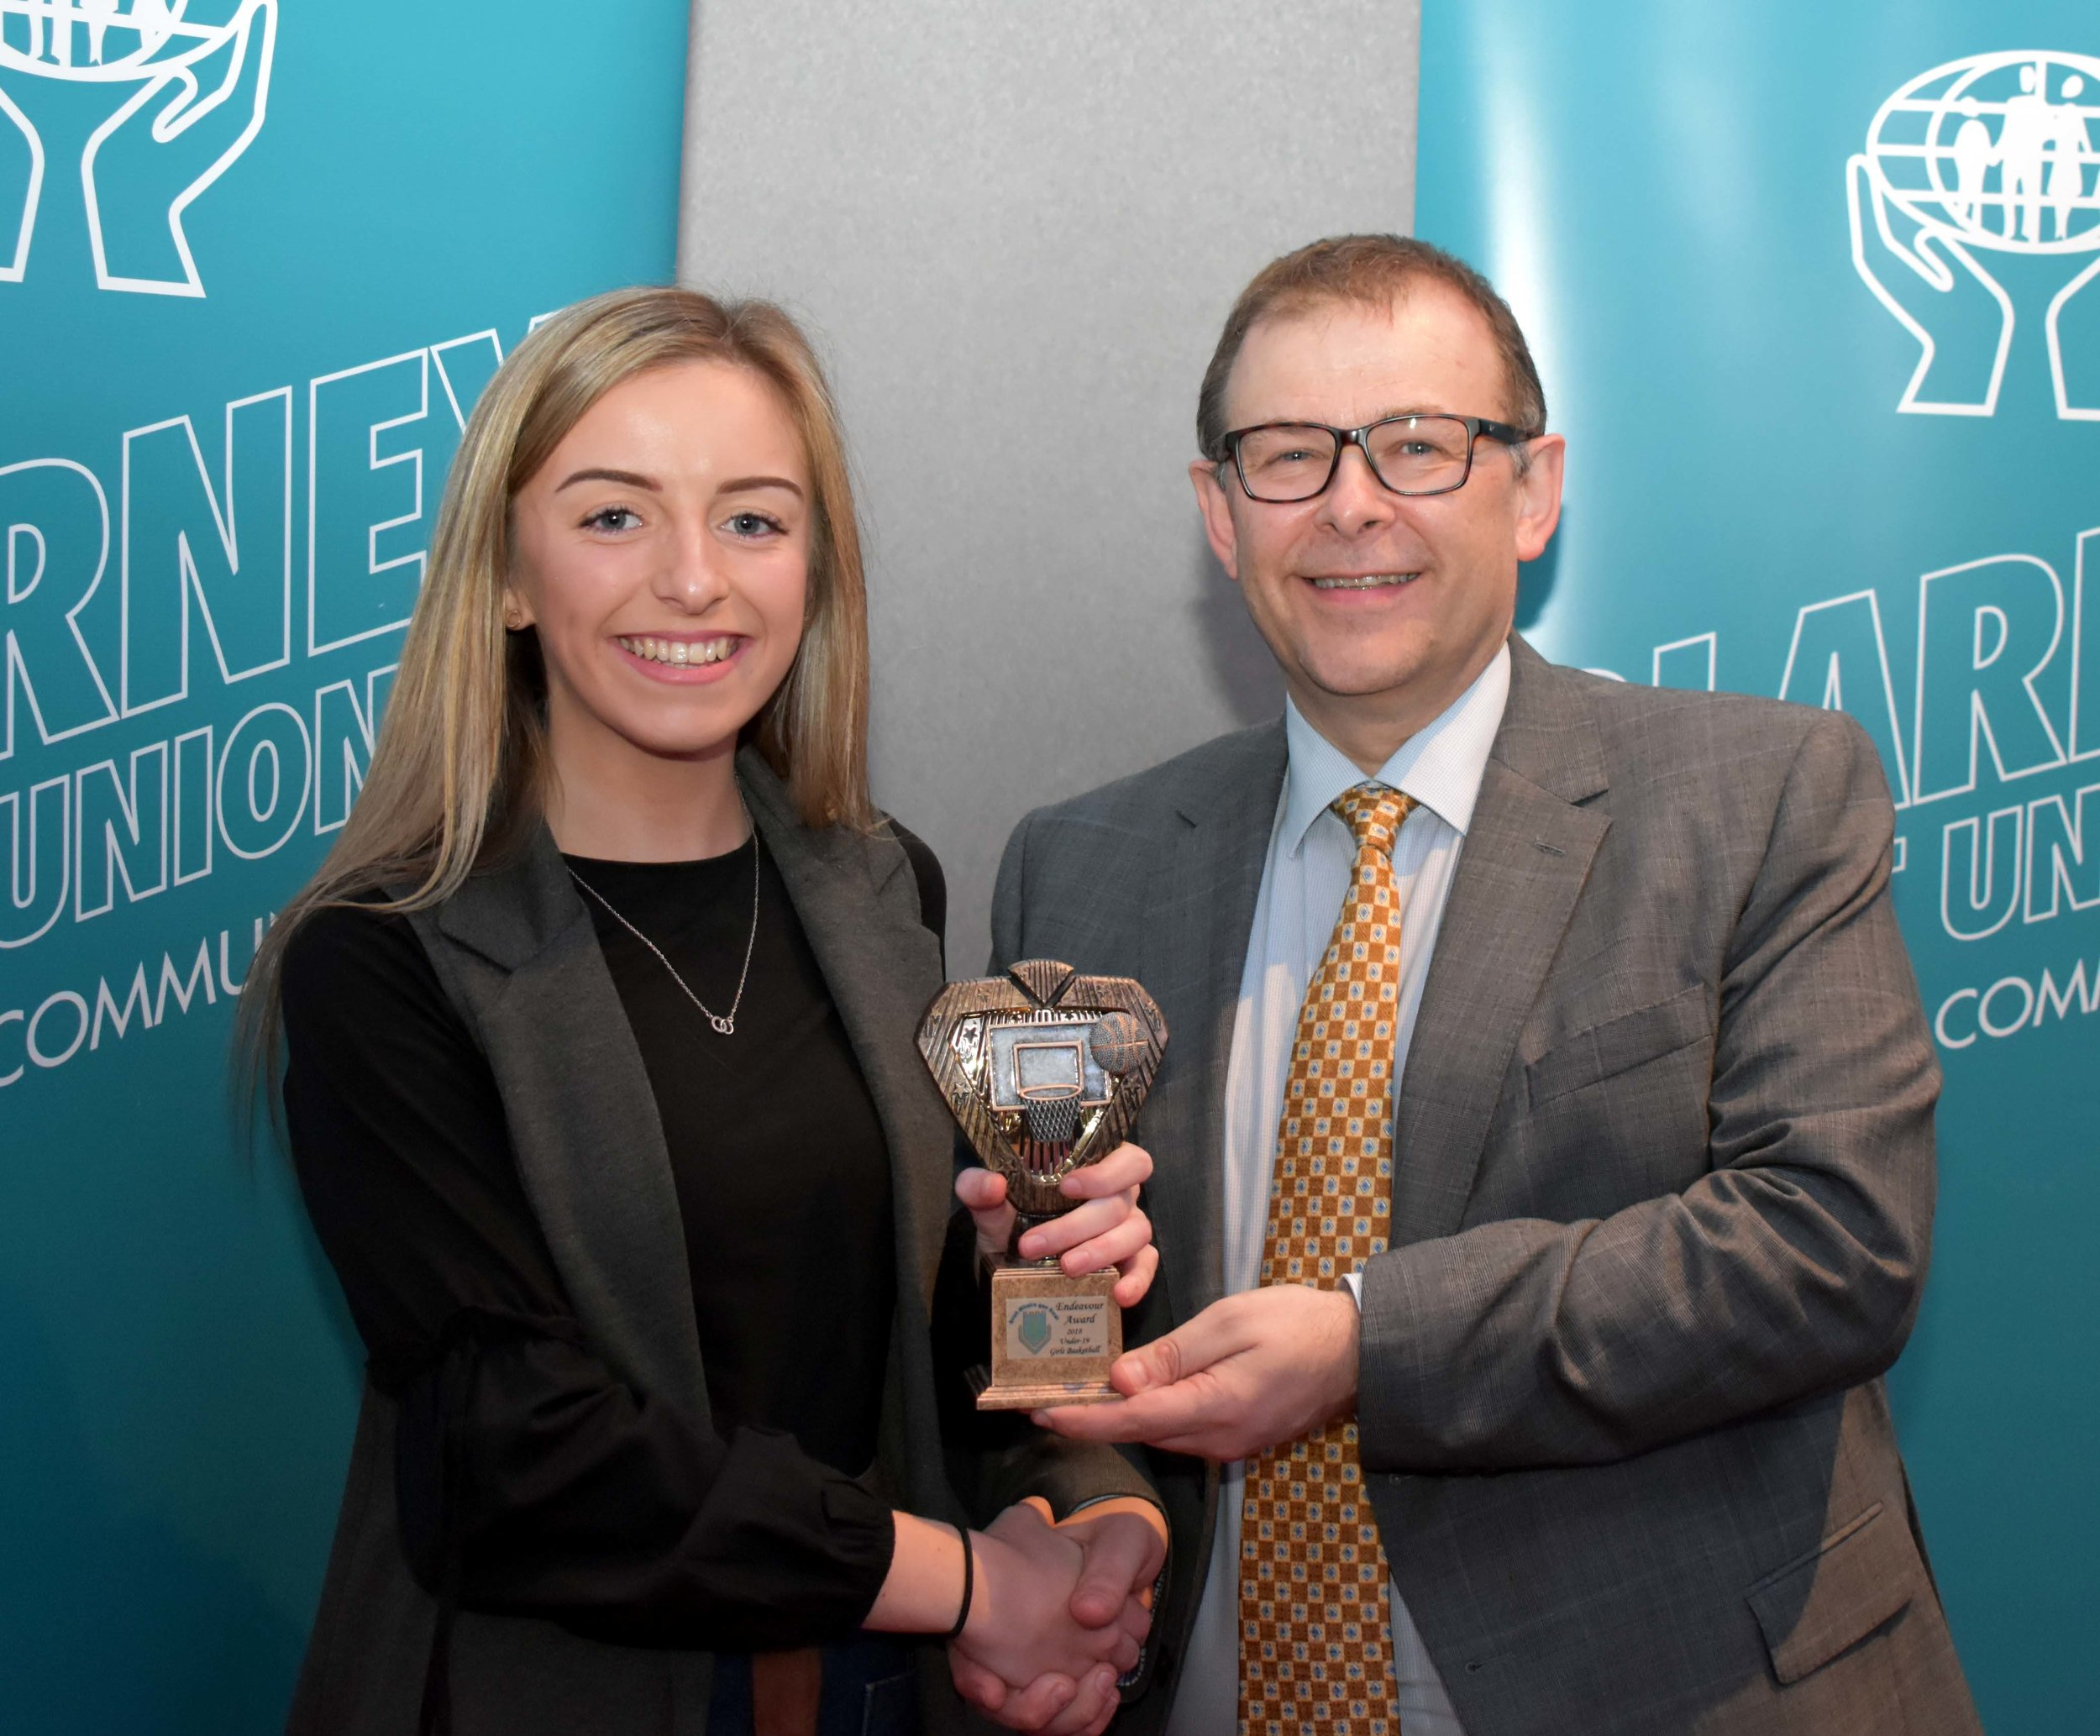 U19 Girls Basketball Team receiving an endeavour award for reaching the All Ireland. Captain Aoife McSweeney accepting the award on behalf of the team. (Pictured with Mr. Mark McGloughlin - BOM and Blarney Credit Union)